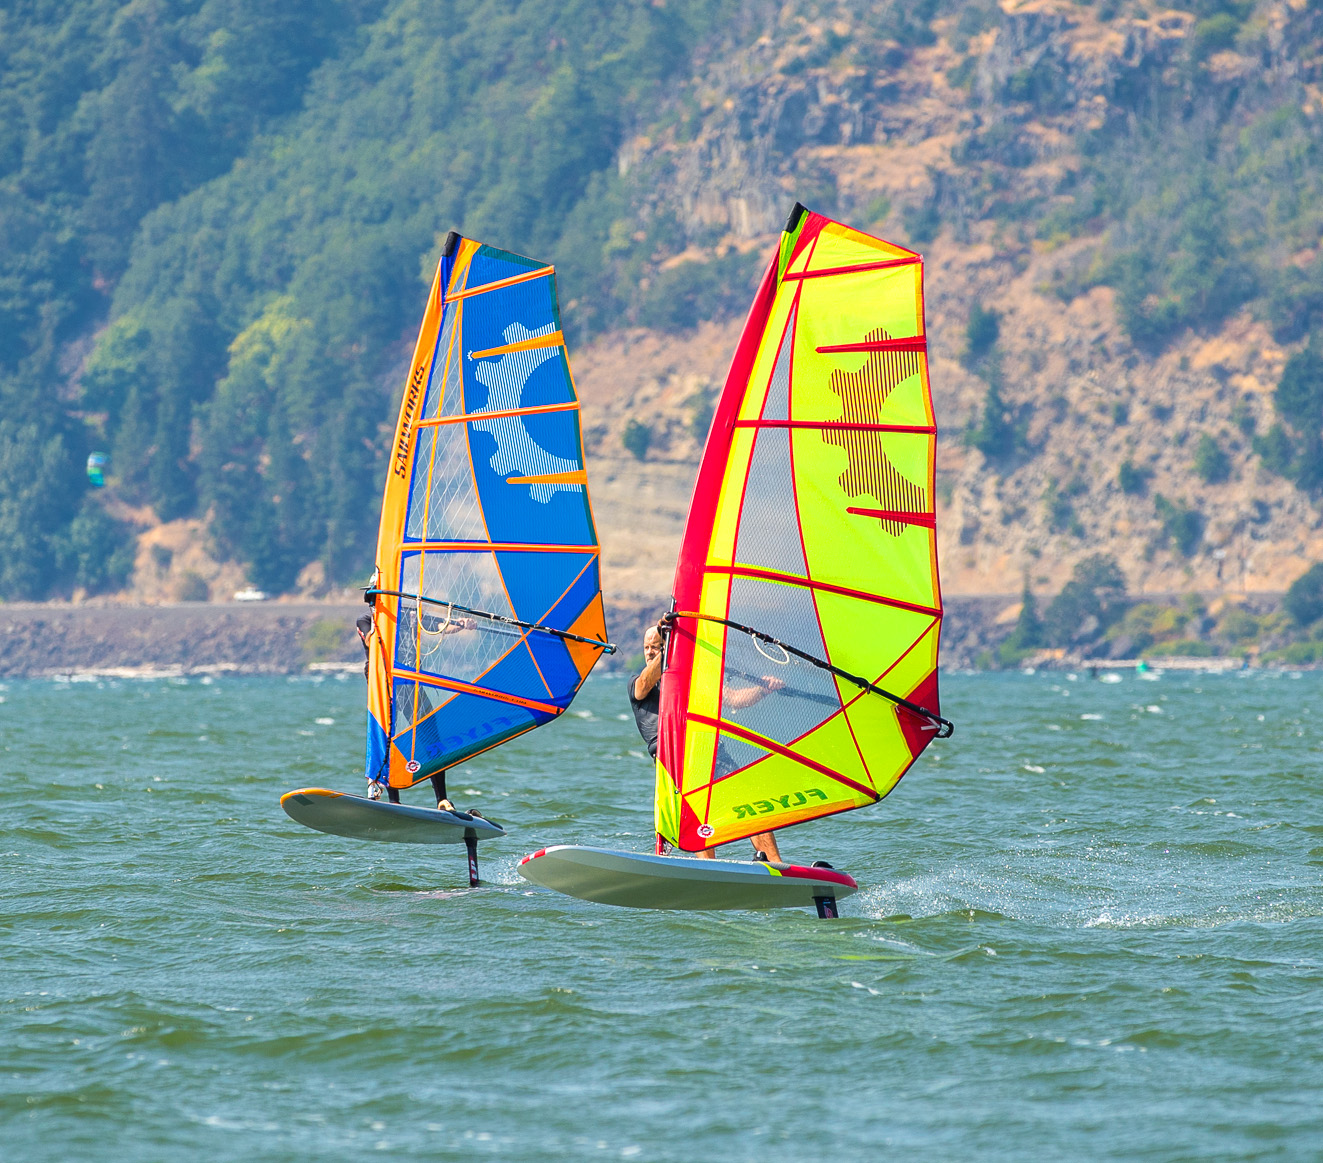 Jim Mudry Windfoiling Tips